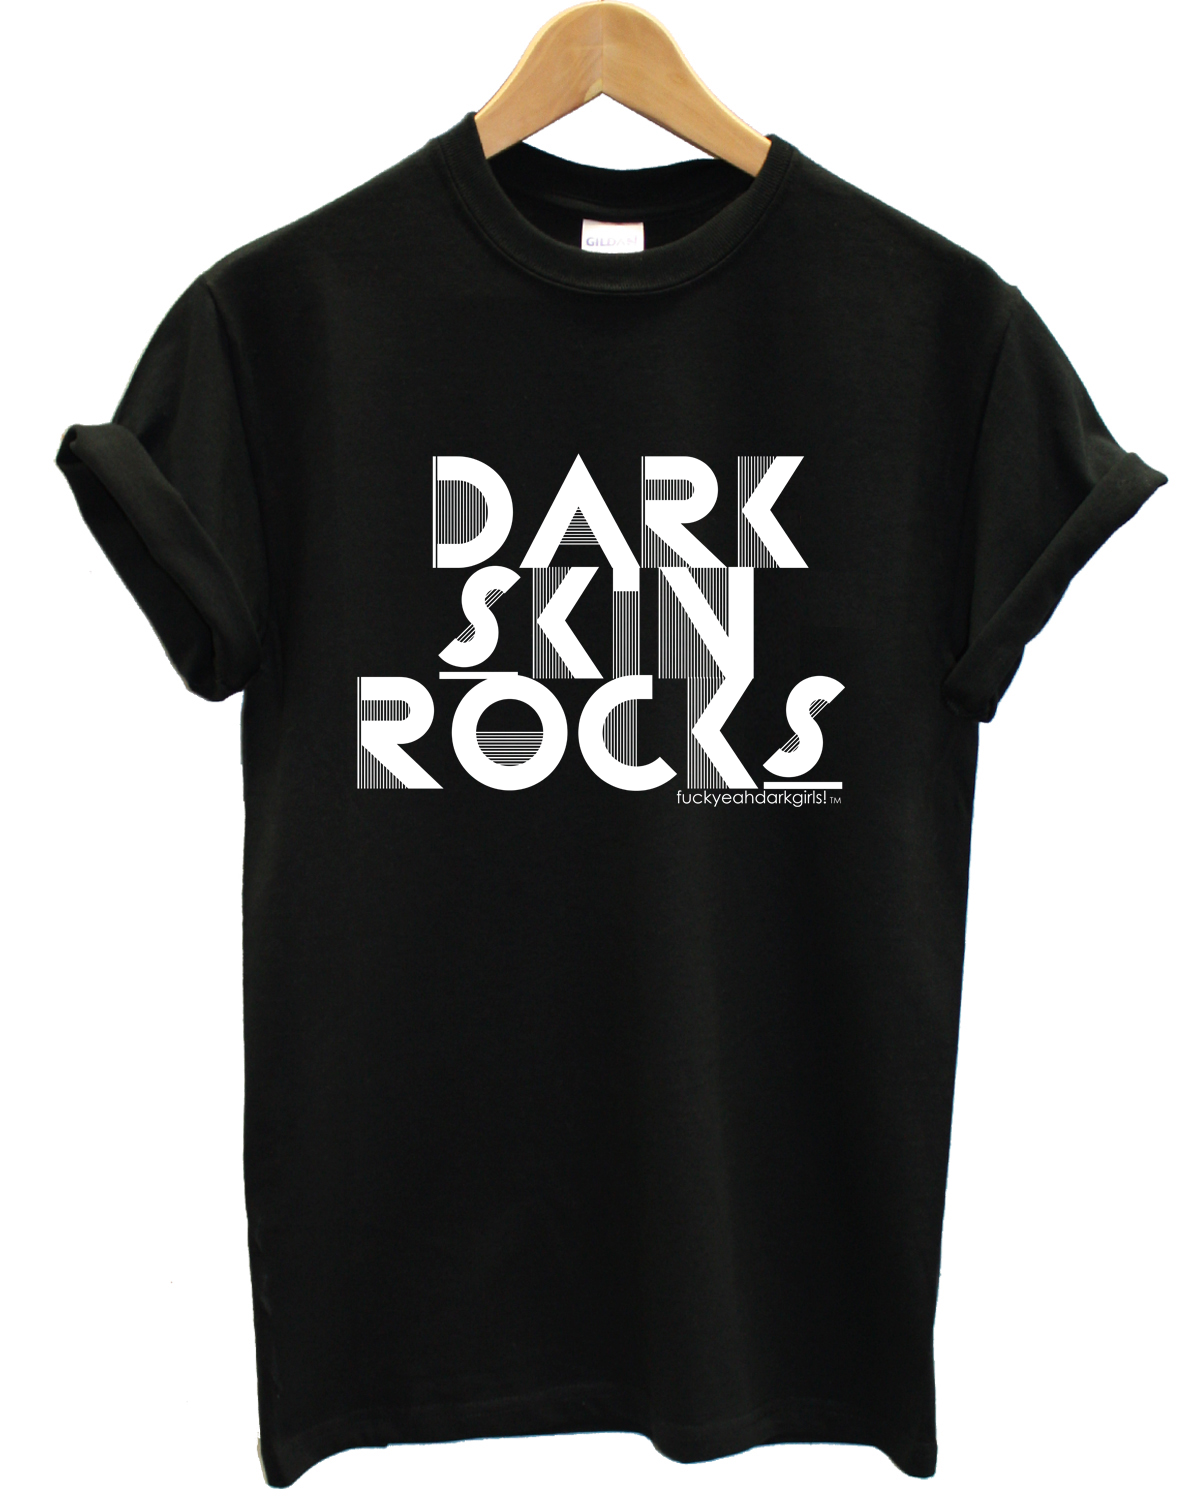 fuckyeahdarkgirls:  UNISEX DARK SKIN ROCKS TEE! | BUY THIS TEE HERE→